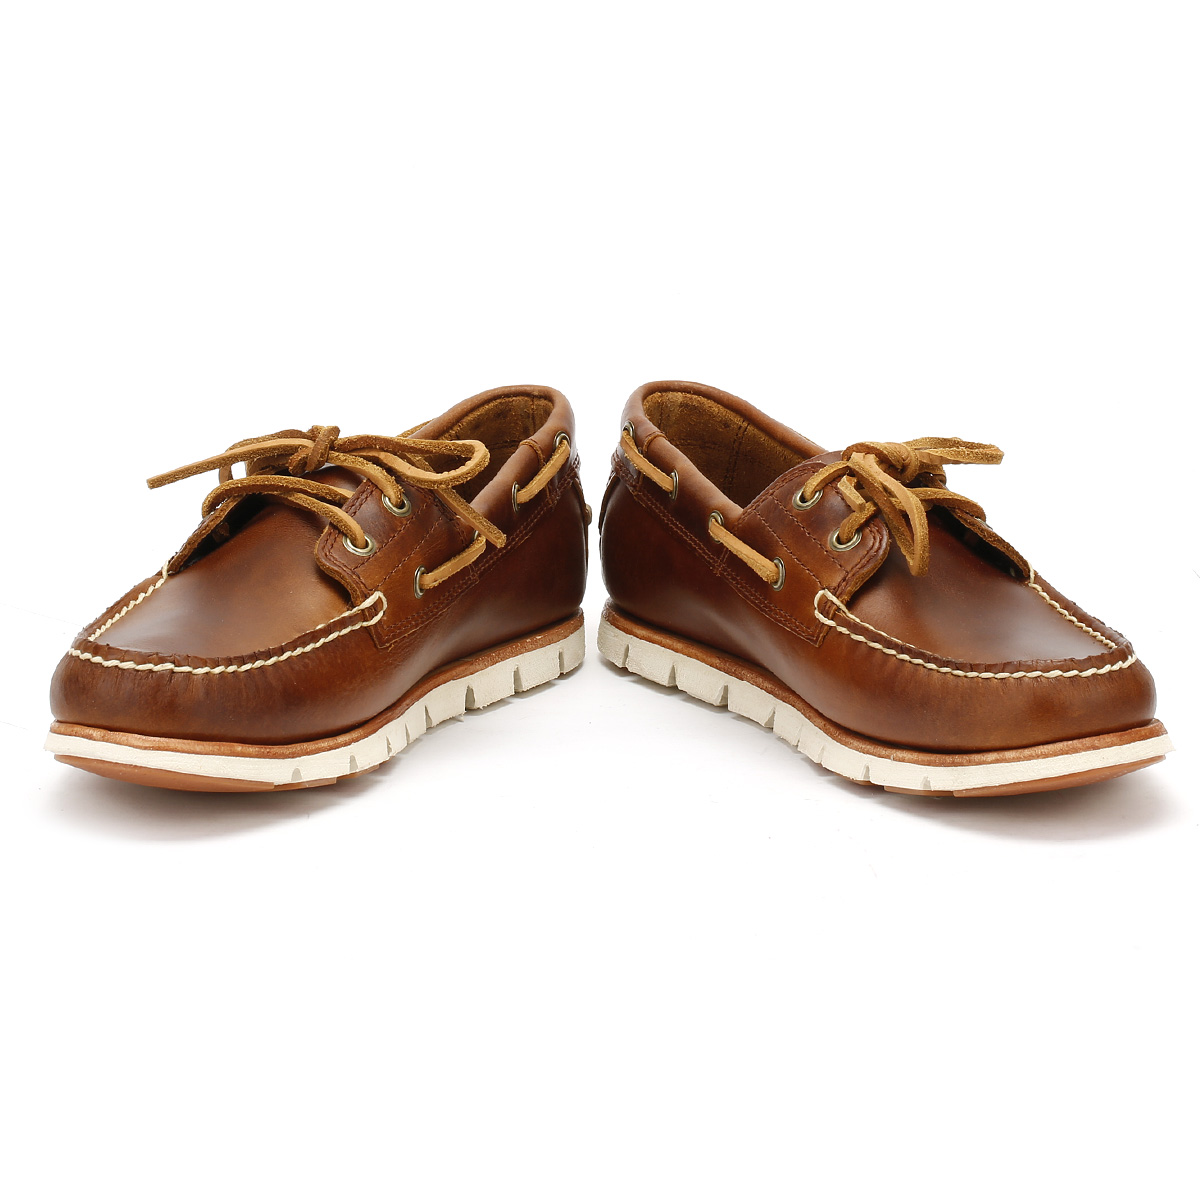 timberland mens classic boat shoes grey or brown lace up